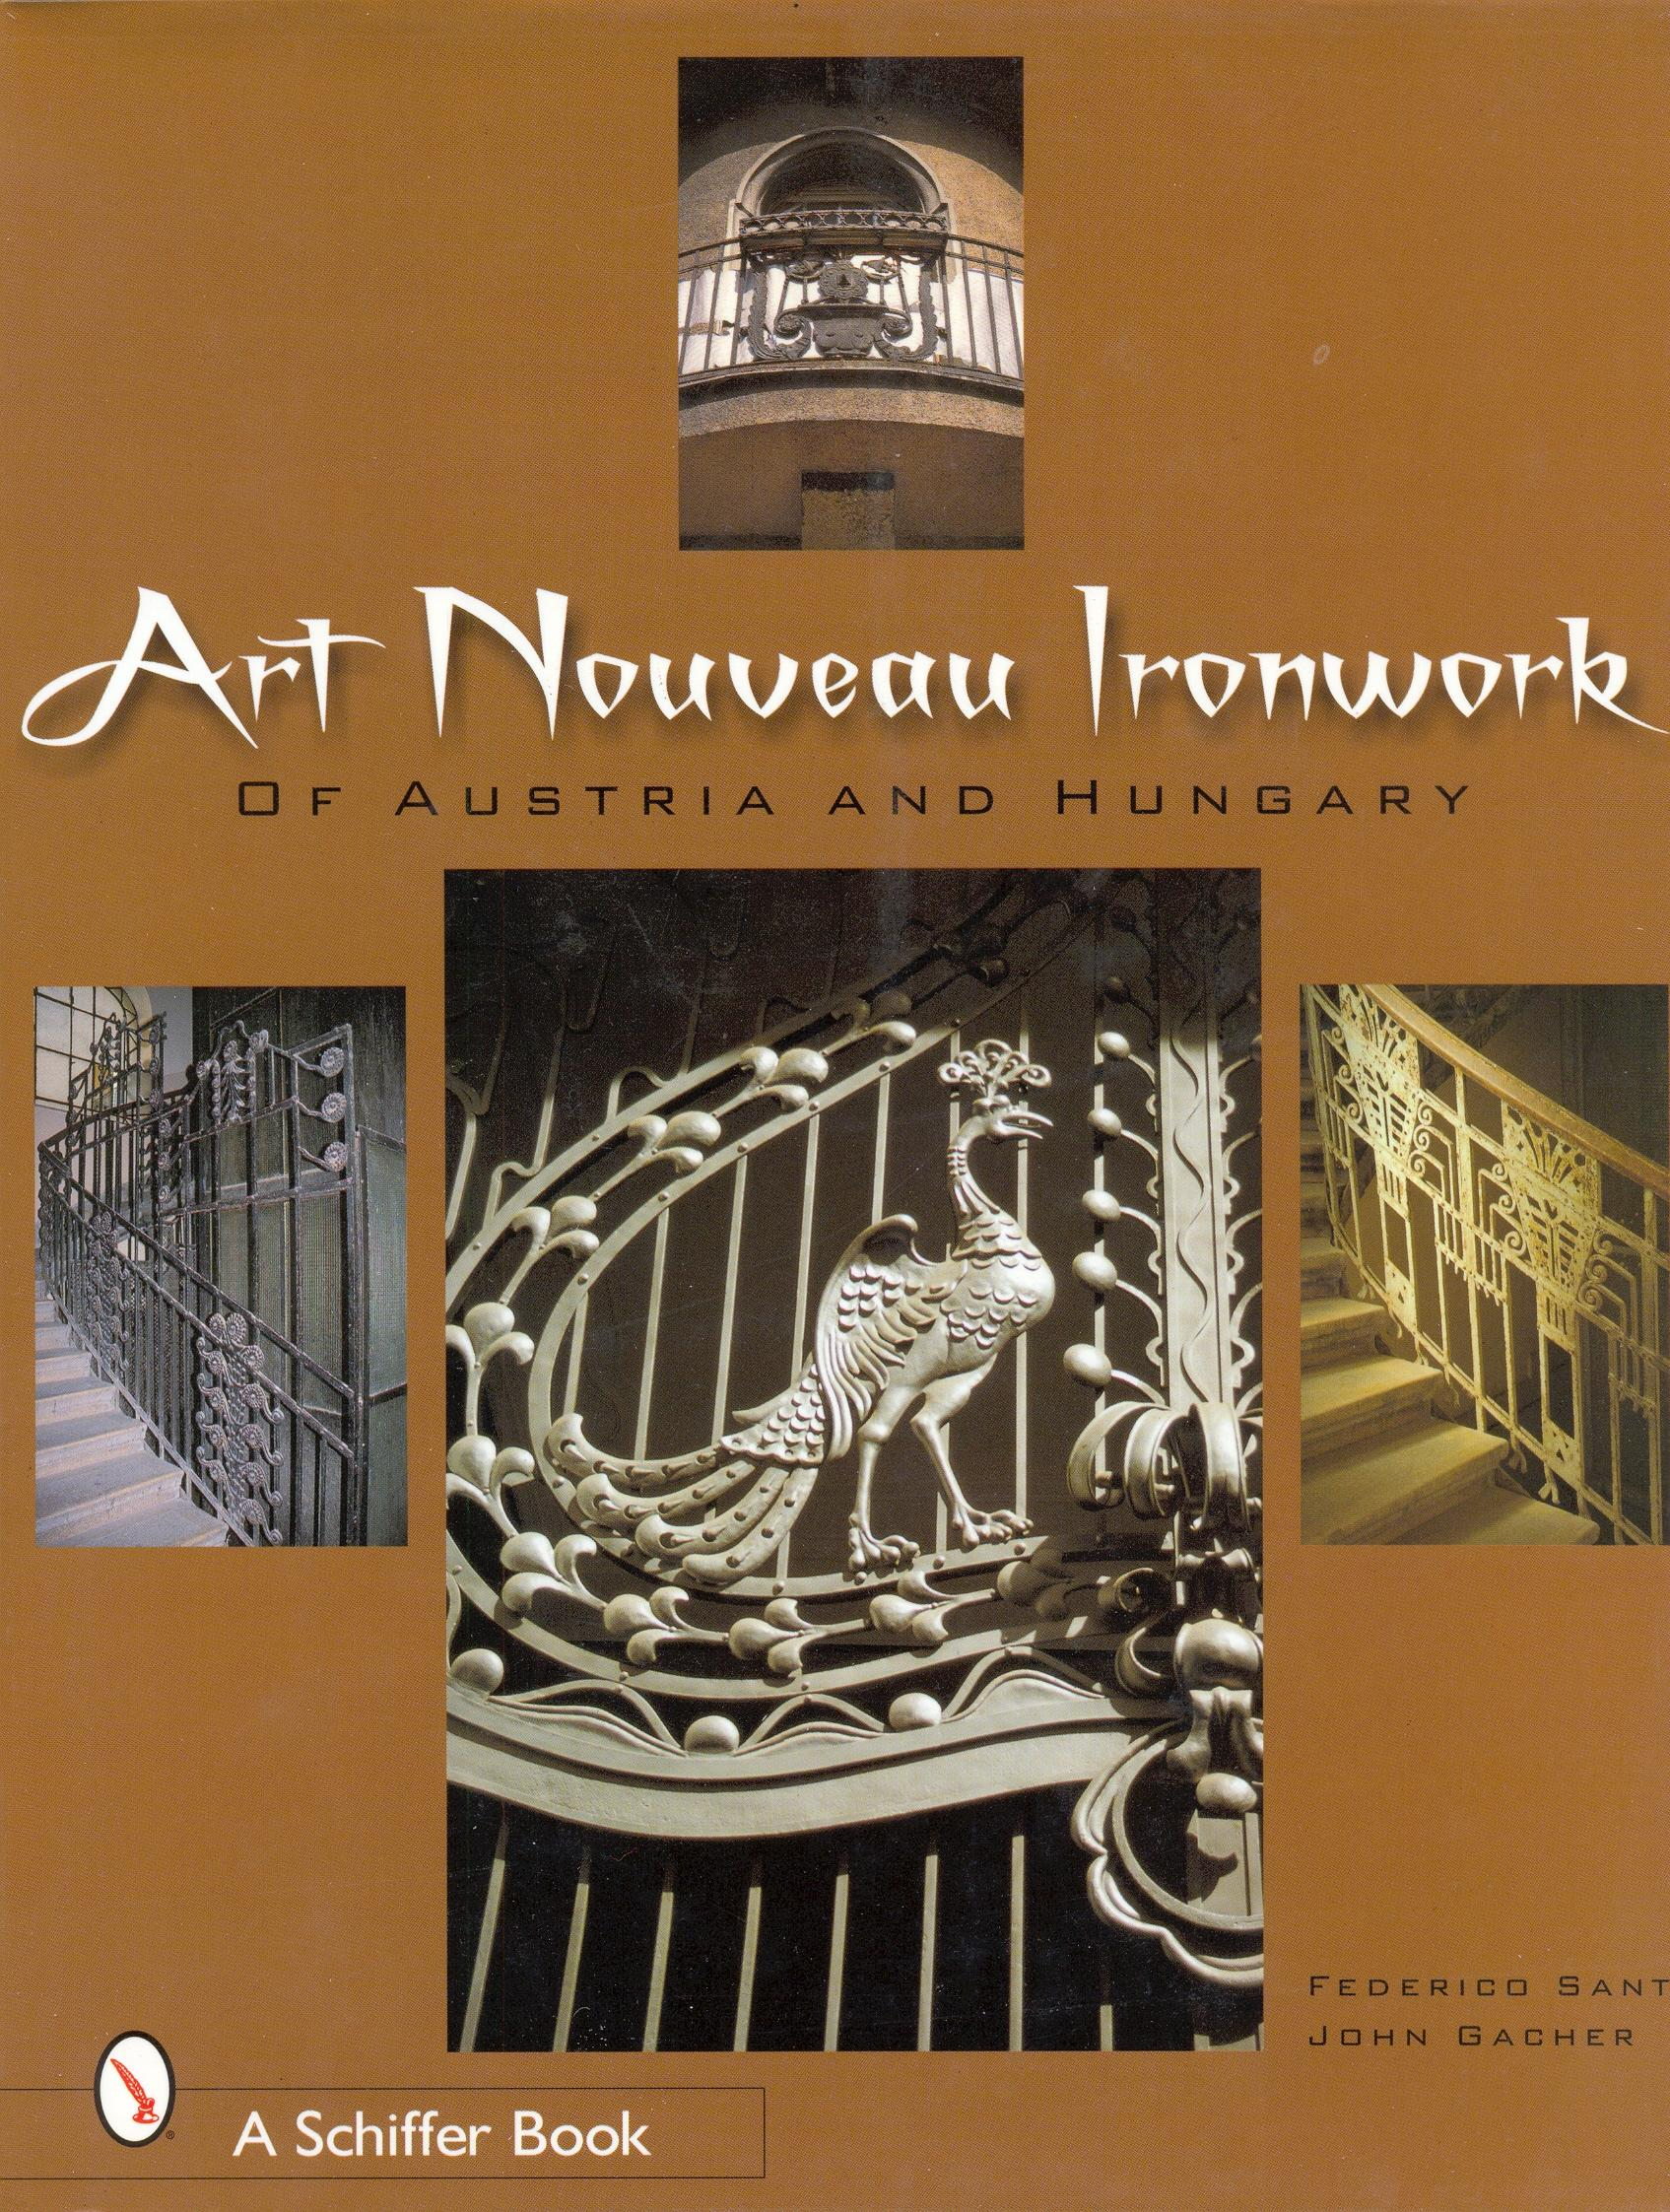 Art Nouveau ironwork in Hungary and Austria